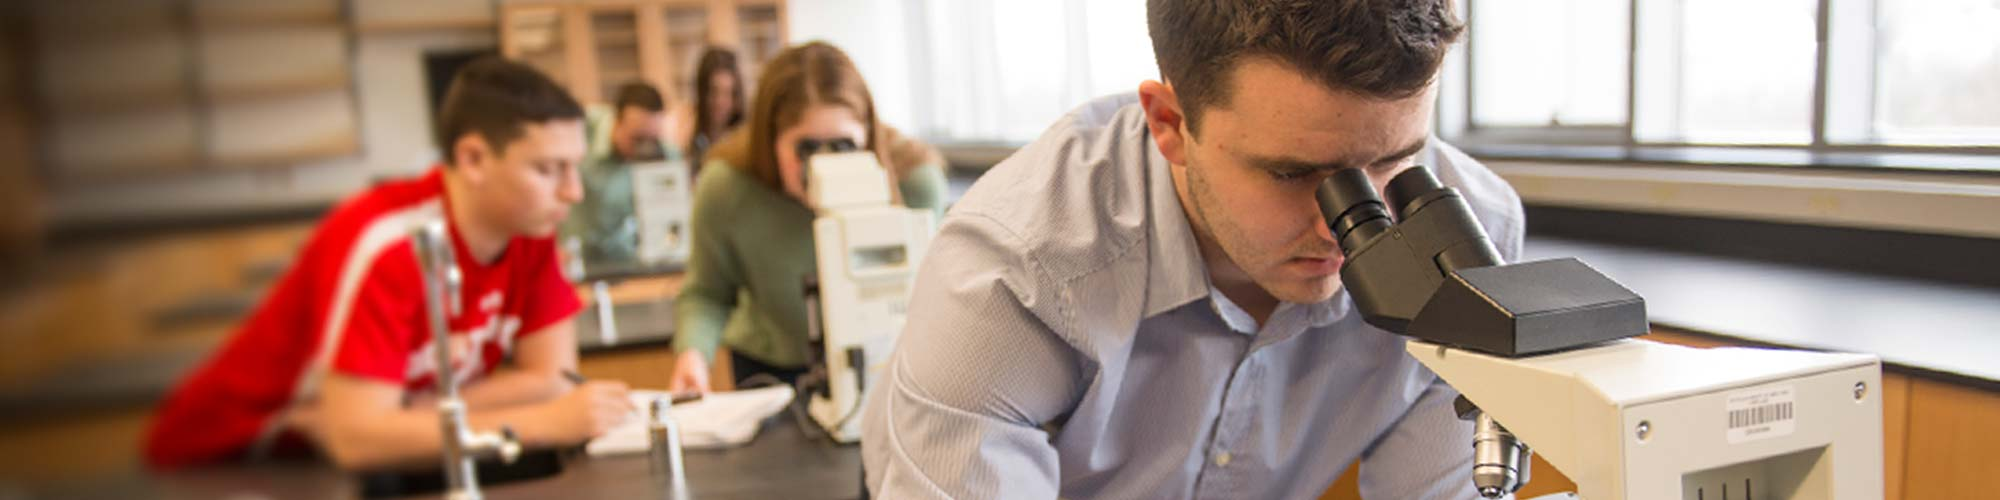 Biology majors peering through microscopes